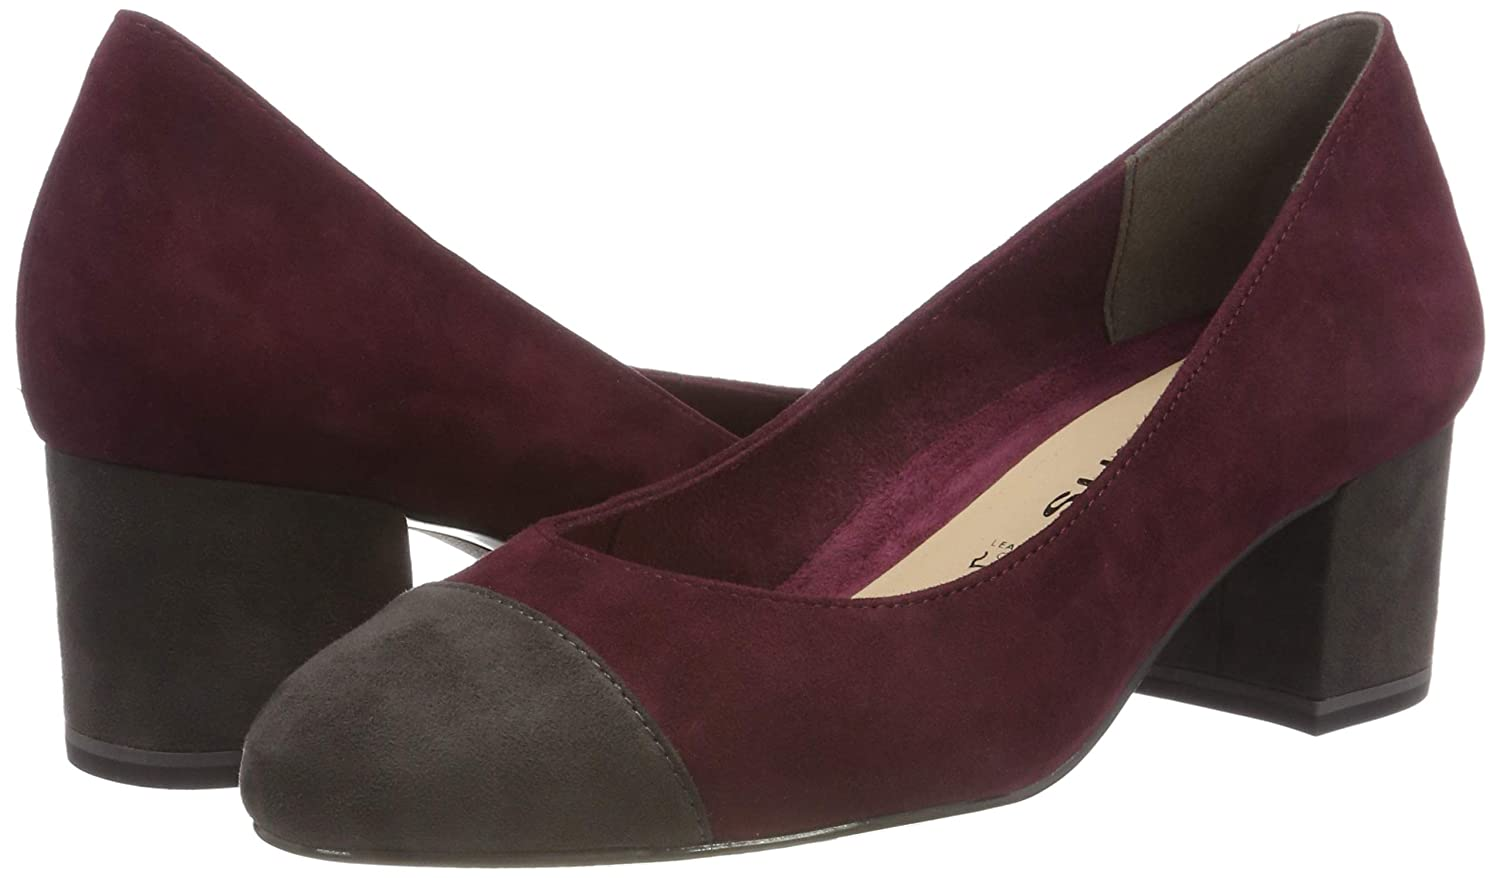 Tamaris Damen 22400-21 Pumps Rot 511) (Merlot/Anthra. 511) Rot 3d392f